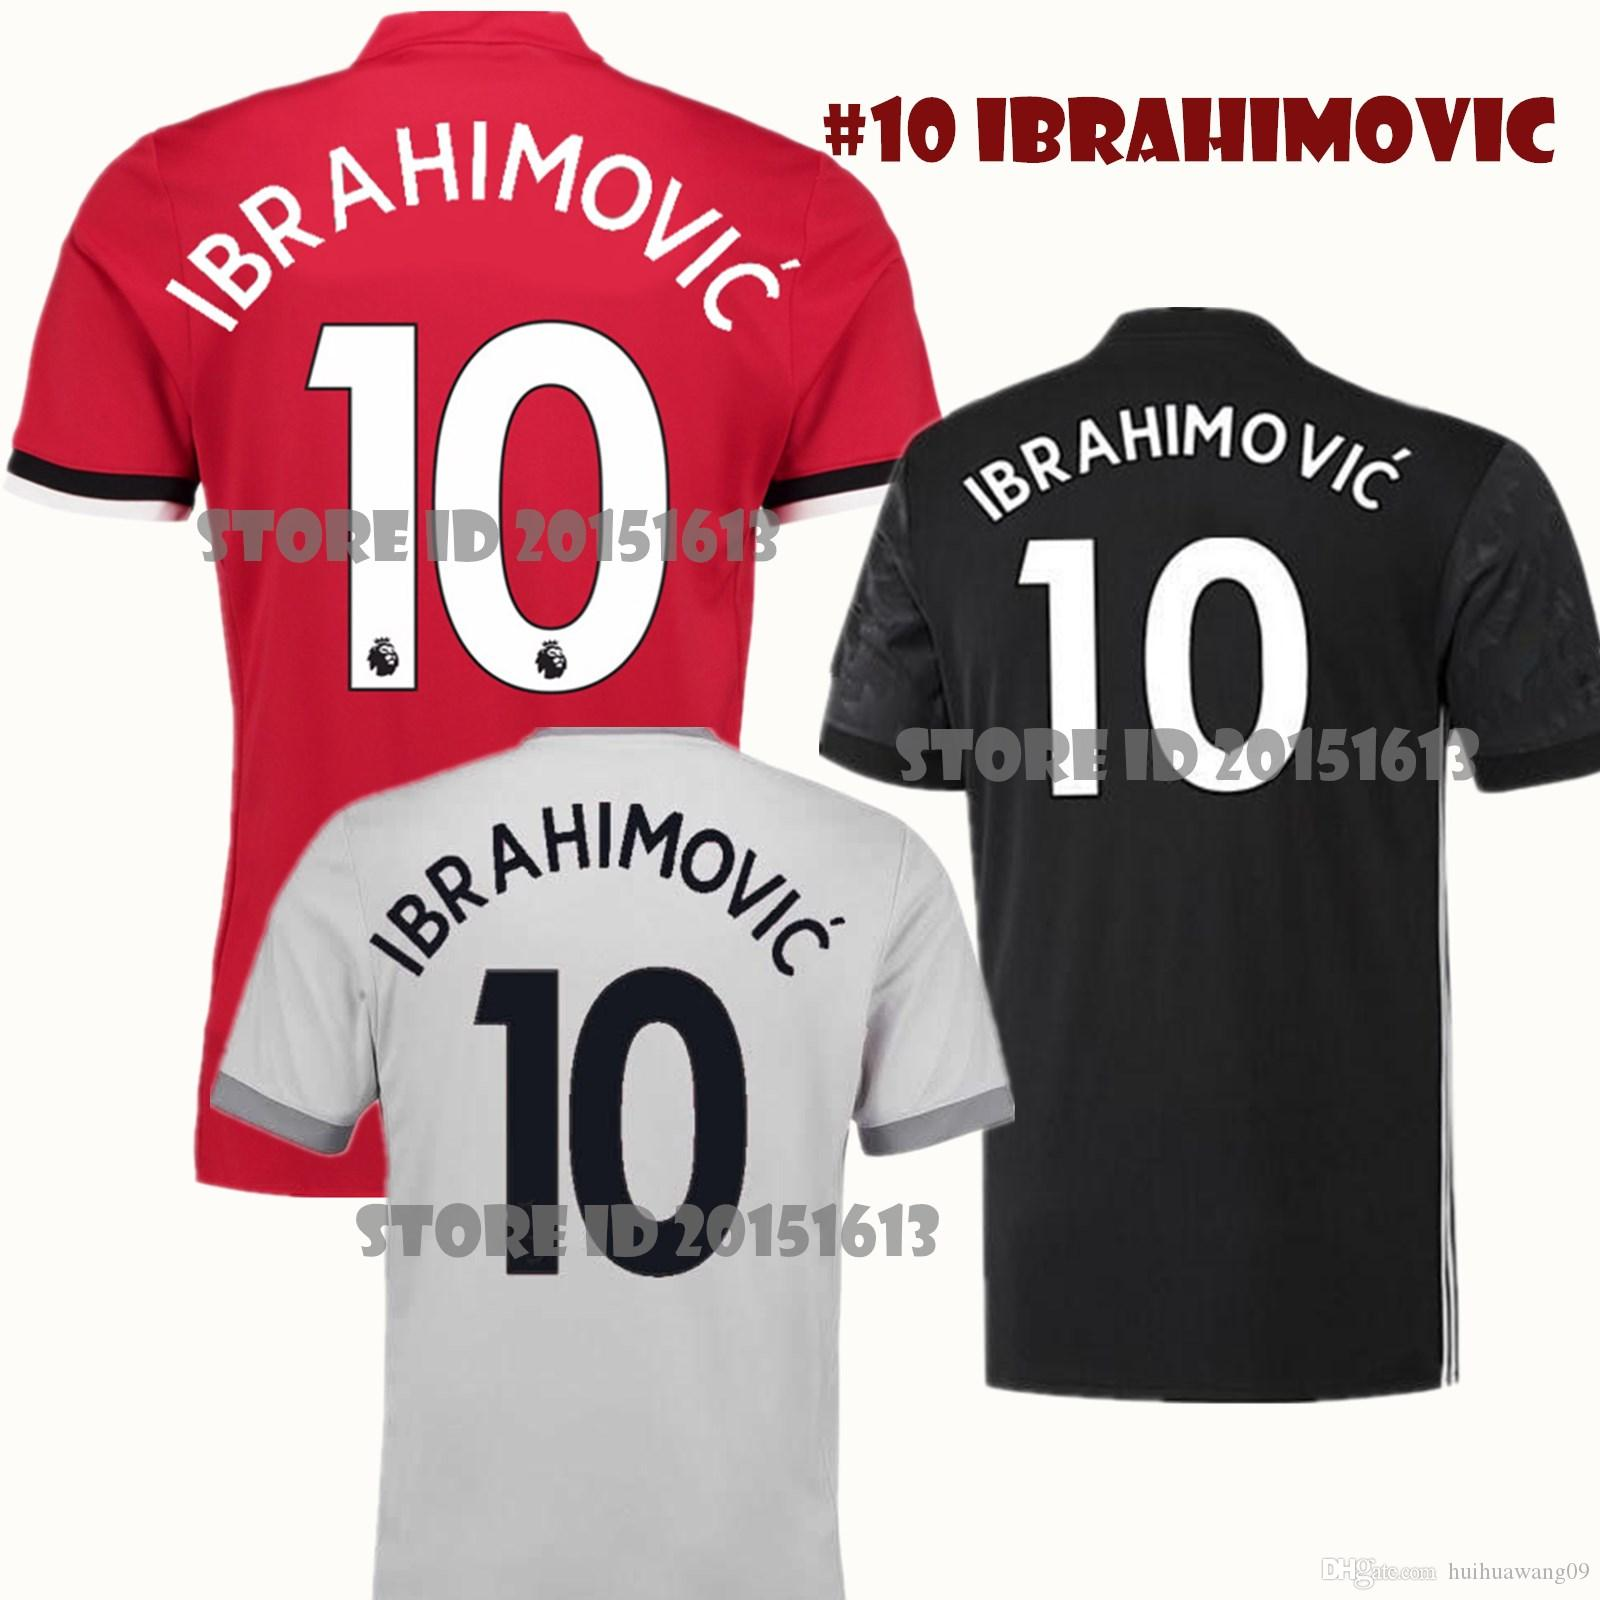 d729c6774 ... 2017 2017 18 United 10 Ibrahimovic Soccer Jerseys Man Utd Jersey 2018  Home Away Pogba 9 ...